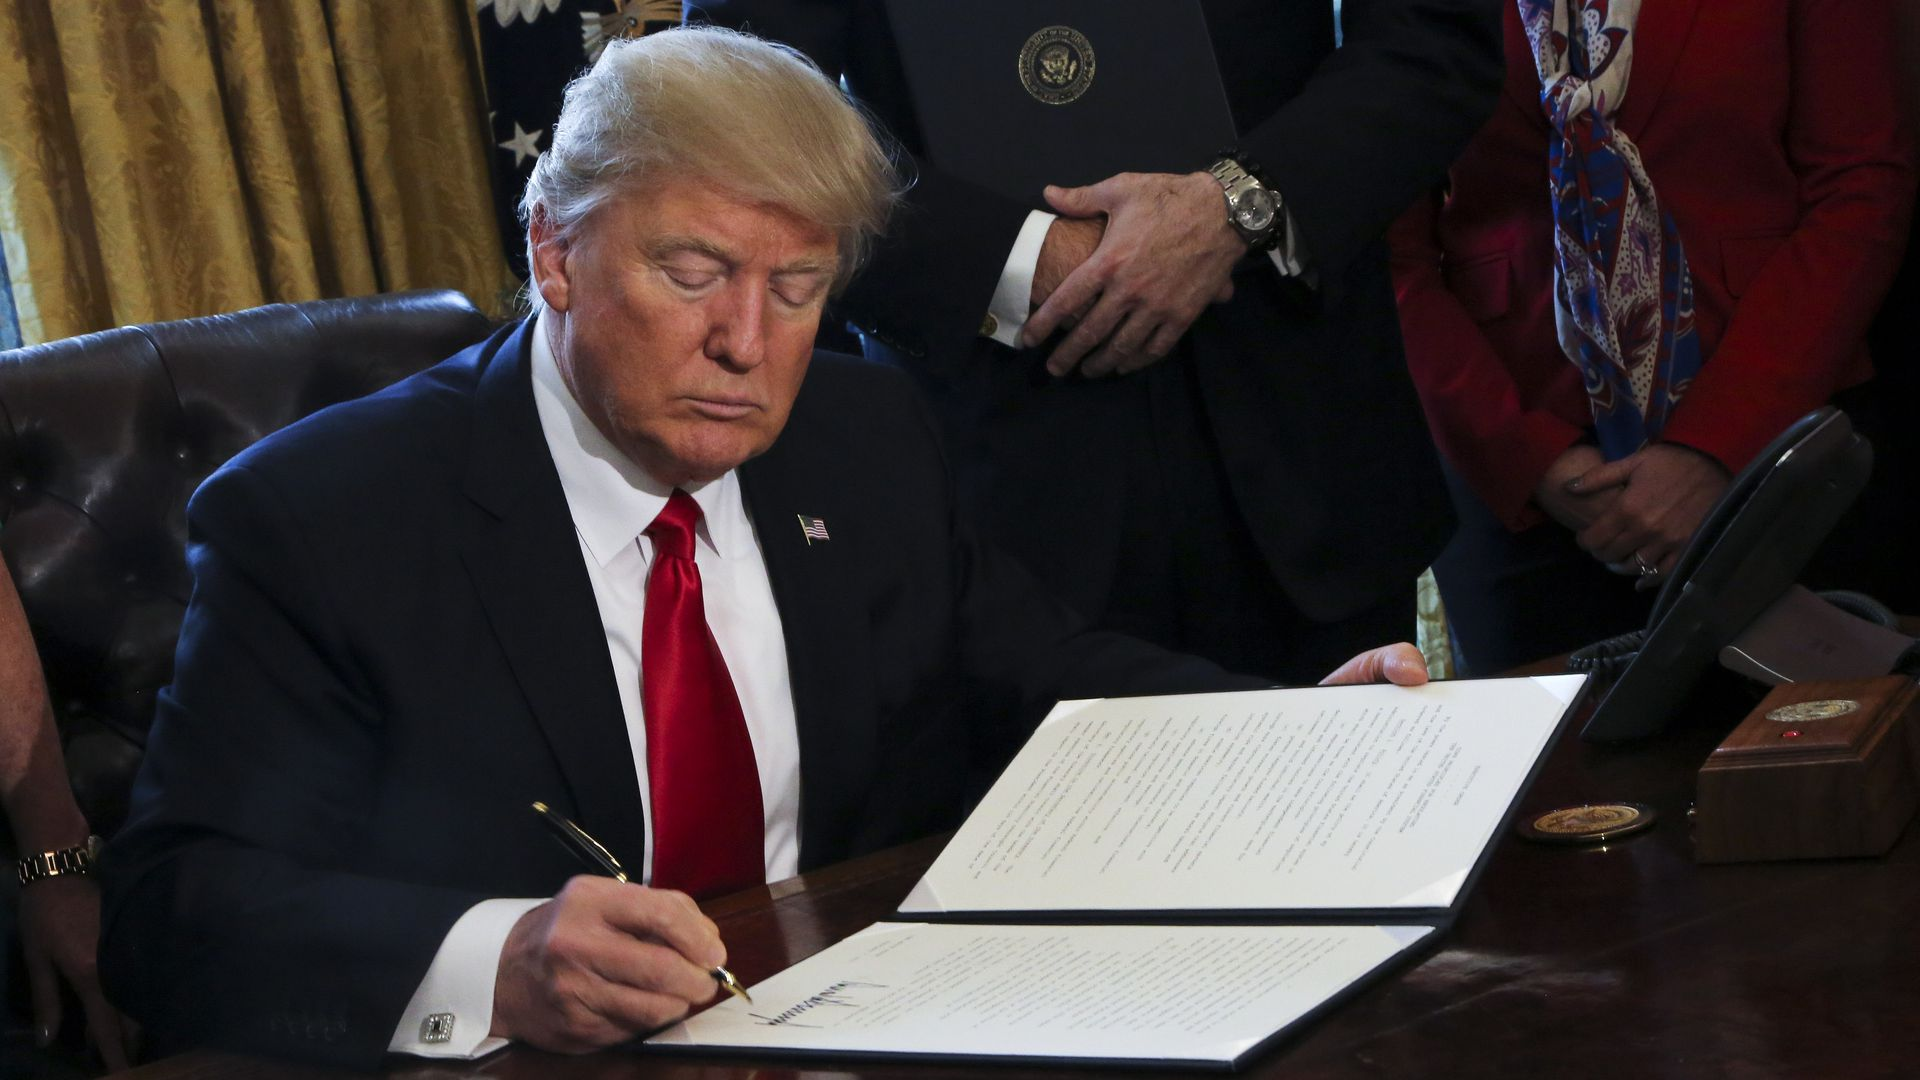 Trump signing an executive order